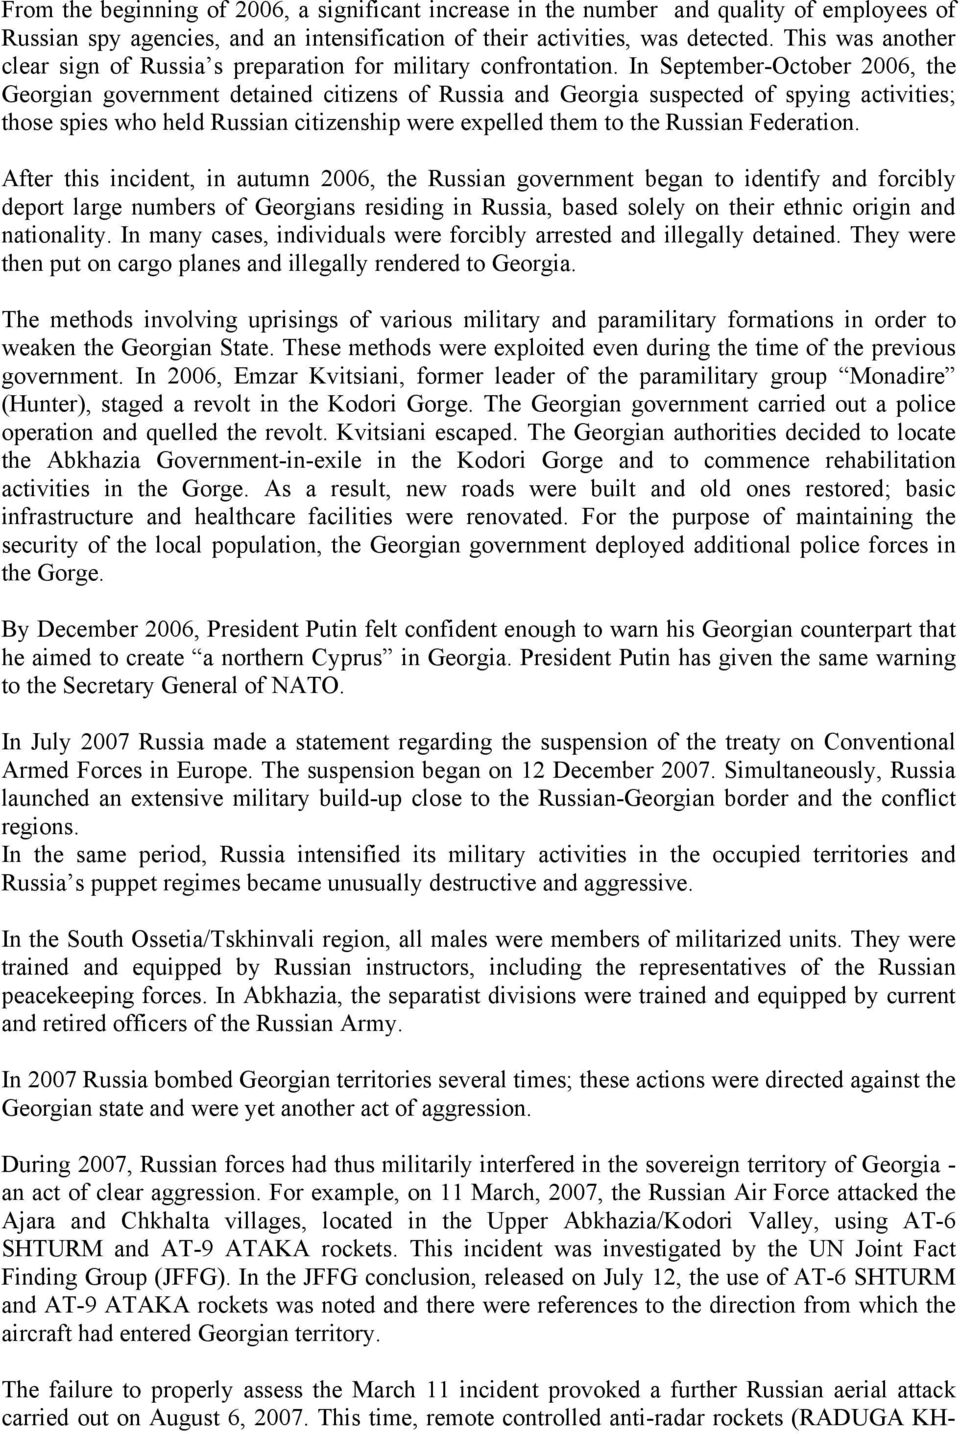 In September-October 2006, the Georgian government detained citizens of Russia and Georgia suspected of spying activities; those spies who held Russian citizenship were expelled them to the Russian